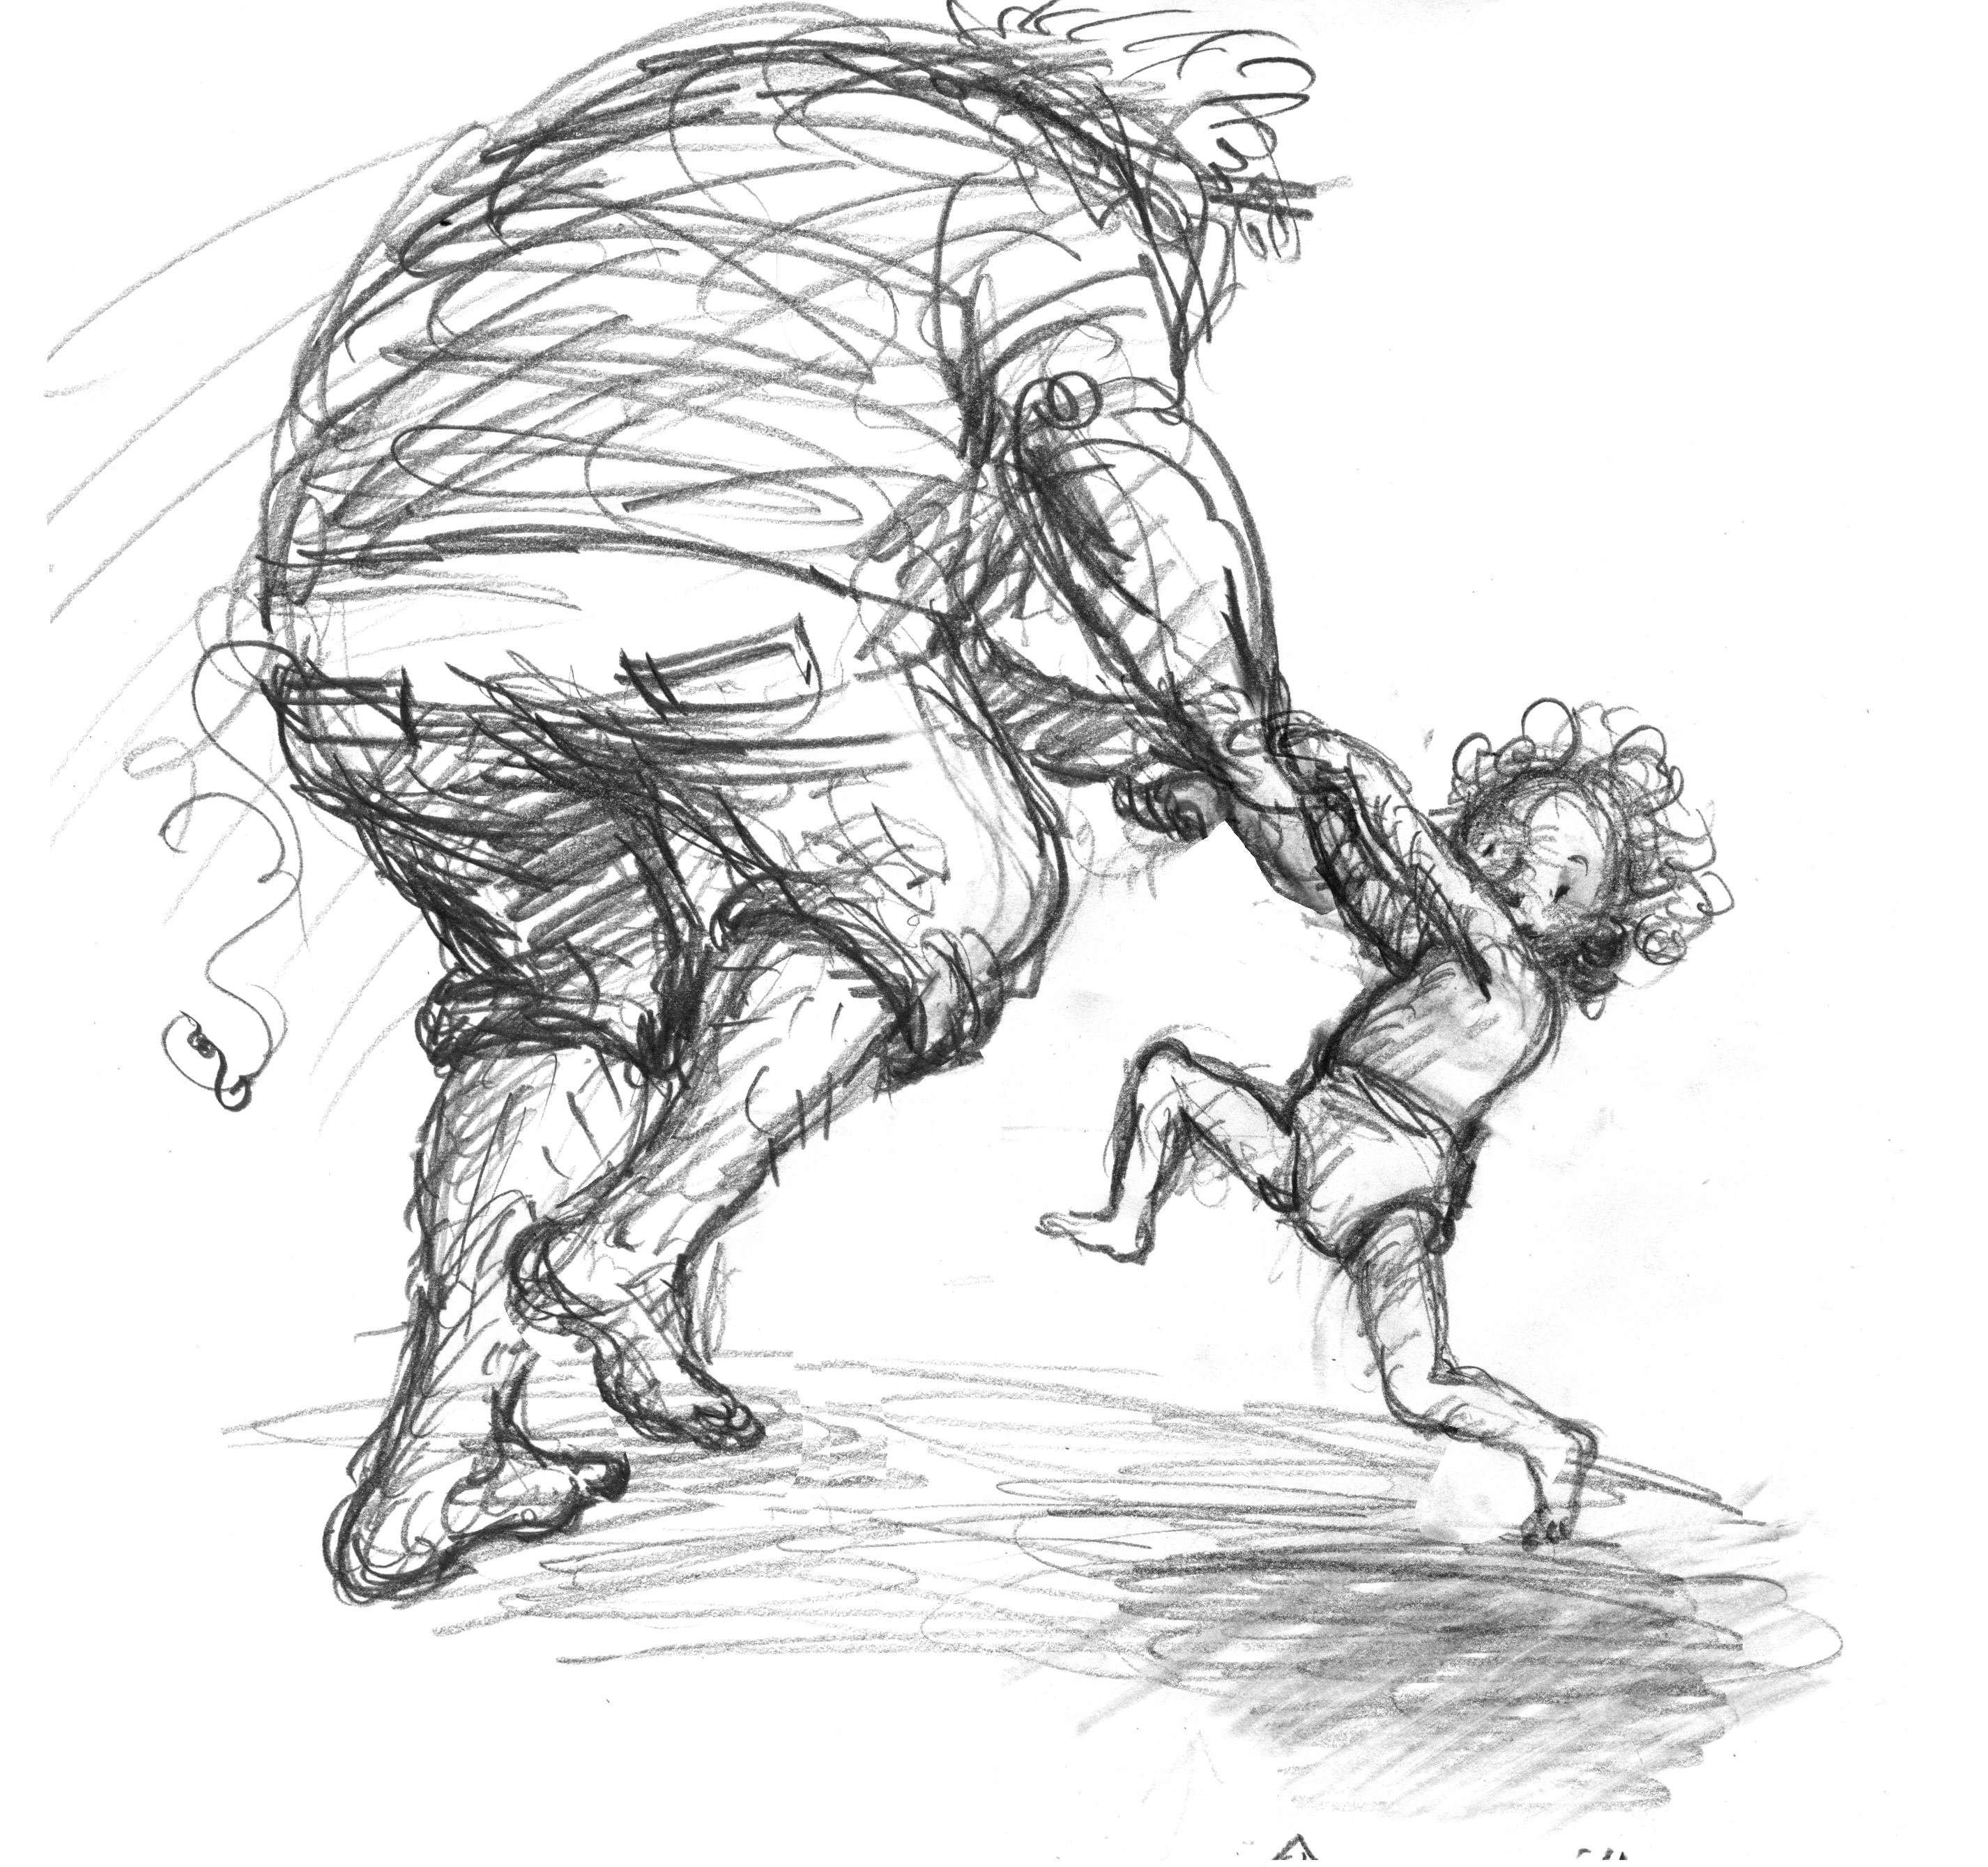 Sketch for dancing scene with Poppy, from Thunderstorm Dancing by Katrina Germein